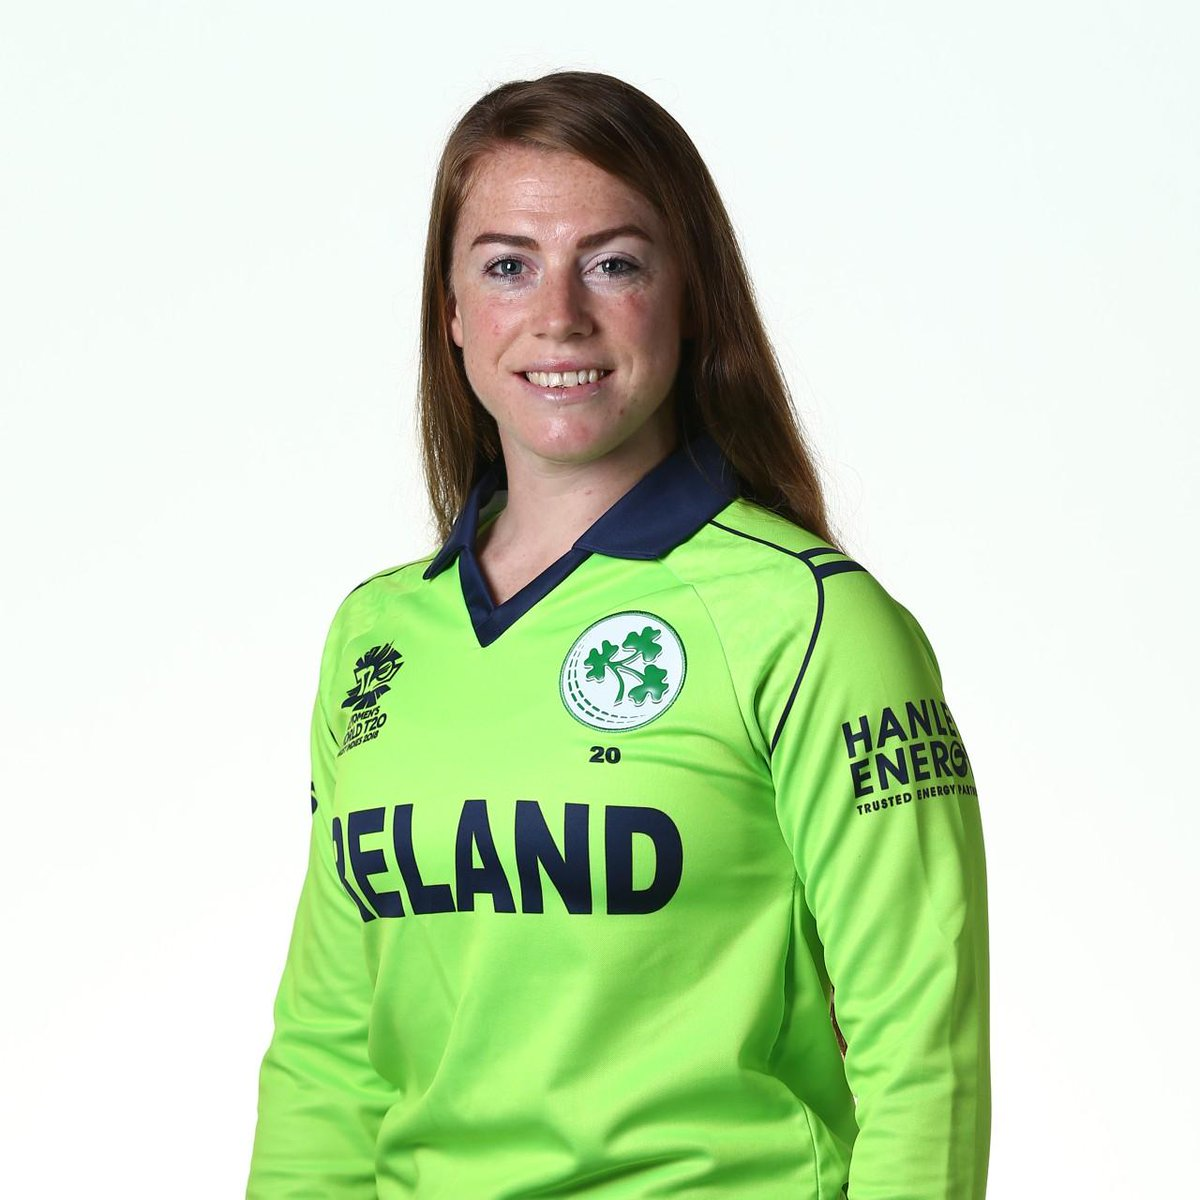 Happy birthday to @maryolo81!  She holds the record for the most dismissals by a wicket-keeper in both women's ODIs and T20Is for Ireland ☘️ https://t.co/uQ4cgSTepM